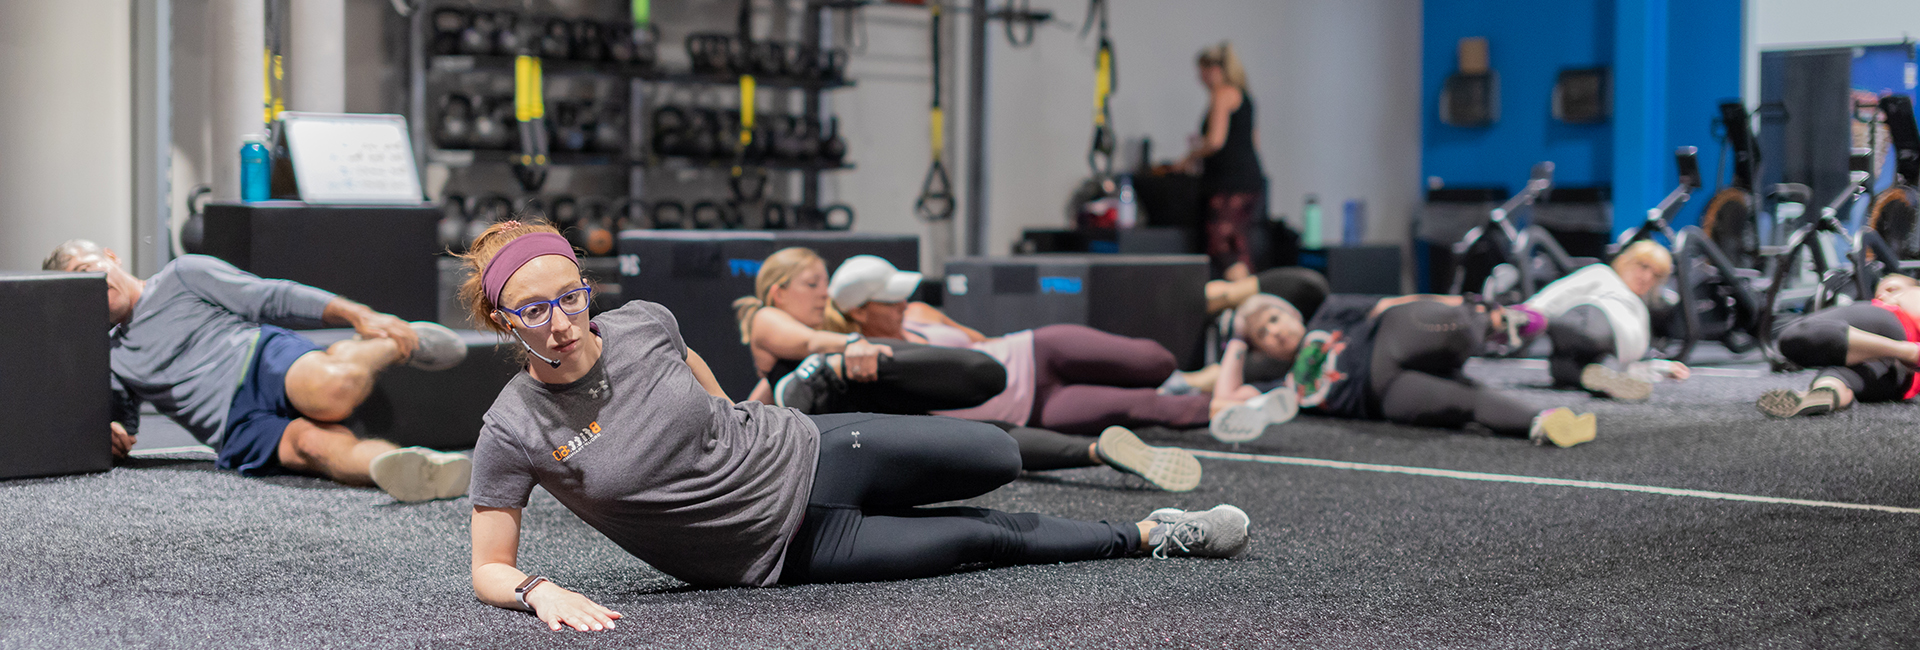 instructor teaching classes at fitness studio near me